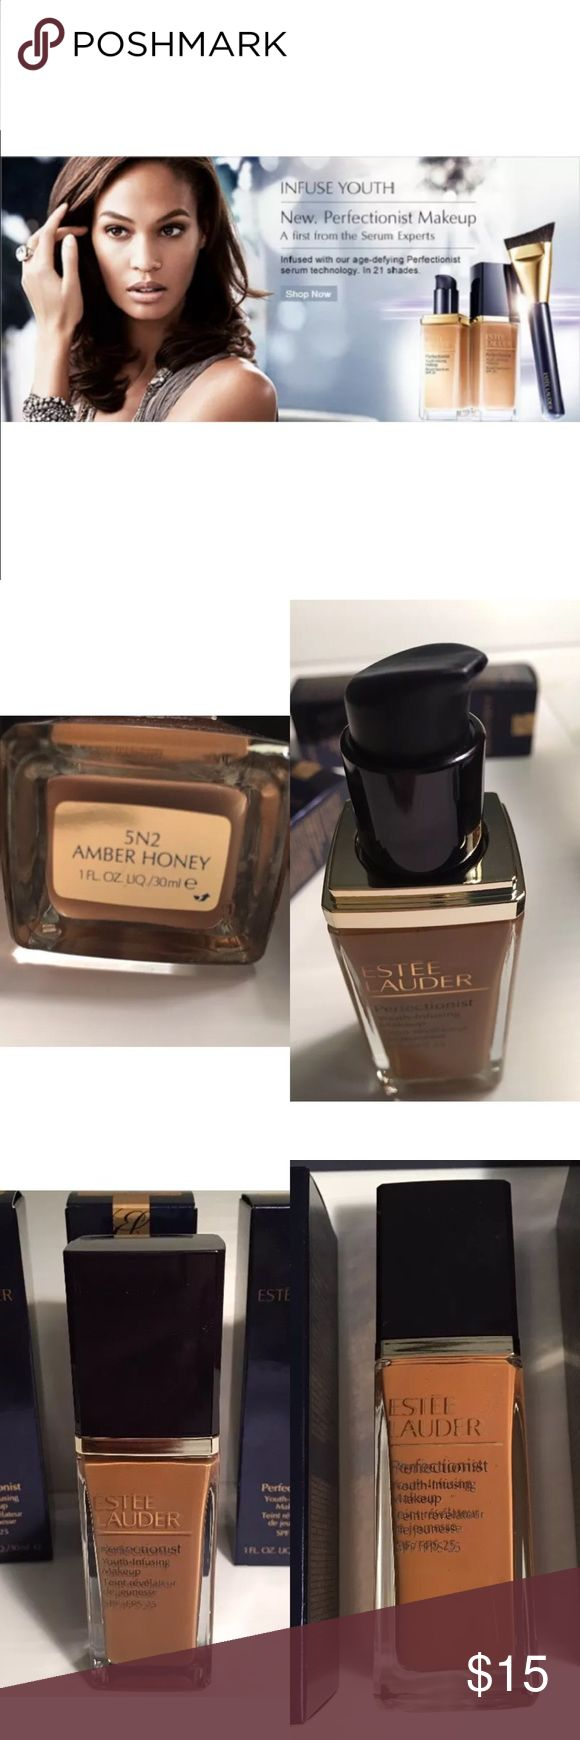 ESTEE LAUDER Perfectionist Makeup Foundation New in box 5N2- Amber Honey Breakthrough makeup infused with age-defying Perfectionist serum technology. Instantly: Brightens and perfects. Re-ignites the look of radiance. Reduces the look of lines. Nourishes with oil-free hydration. Women love it. Instantly, 93% said skin looked transformed, 87% saw a more youthful, radiant look. And in just 4 weeks, 80% saw a reduction in lines and felt their skin was more hydrated.* In a range of long-wearing…